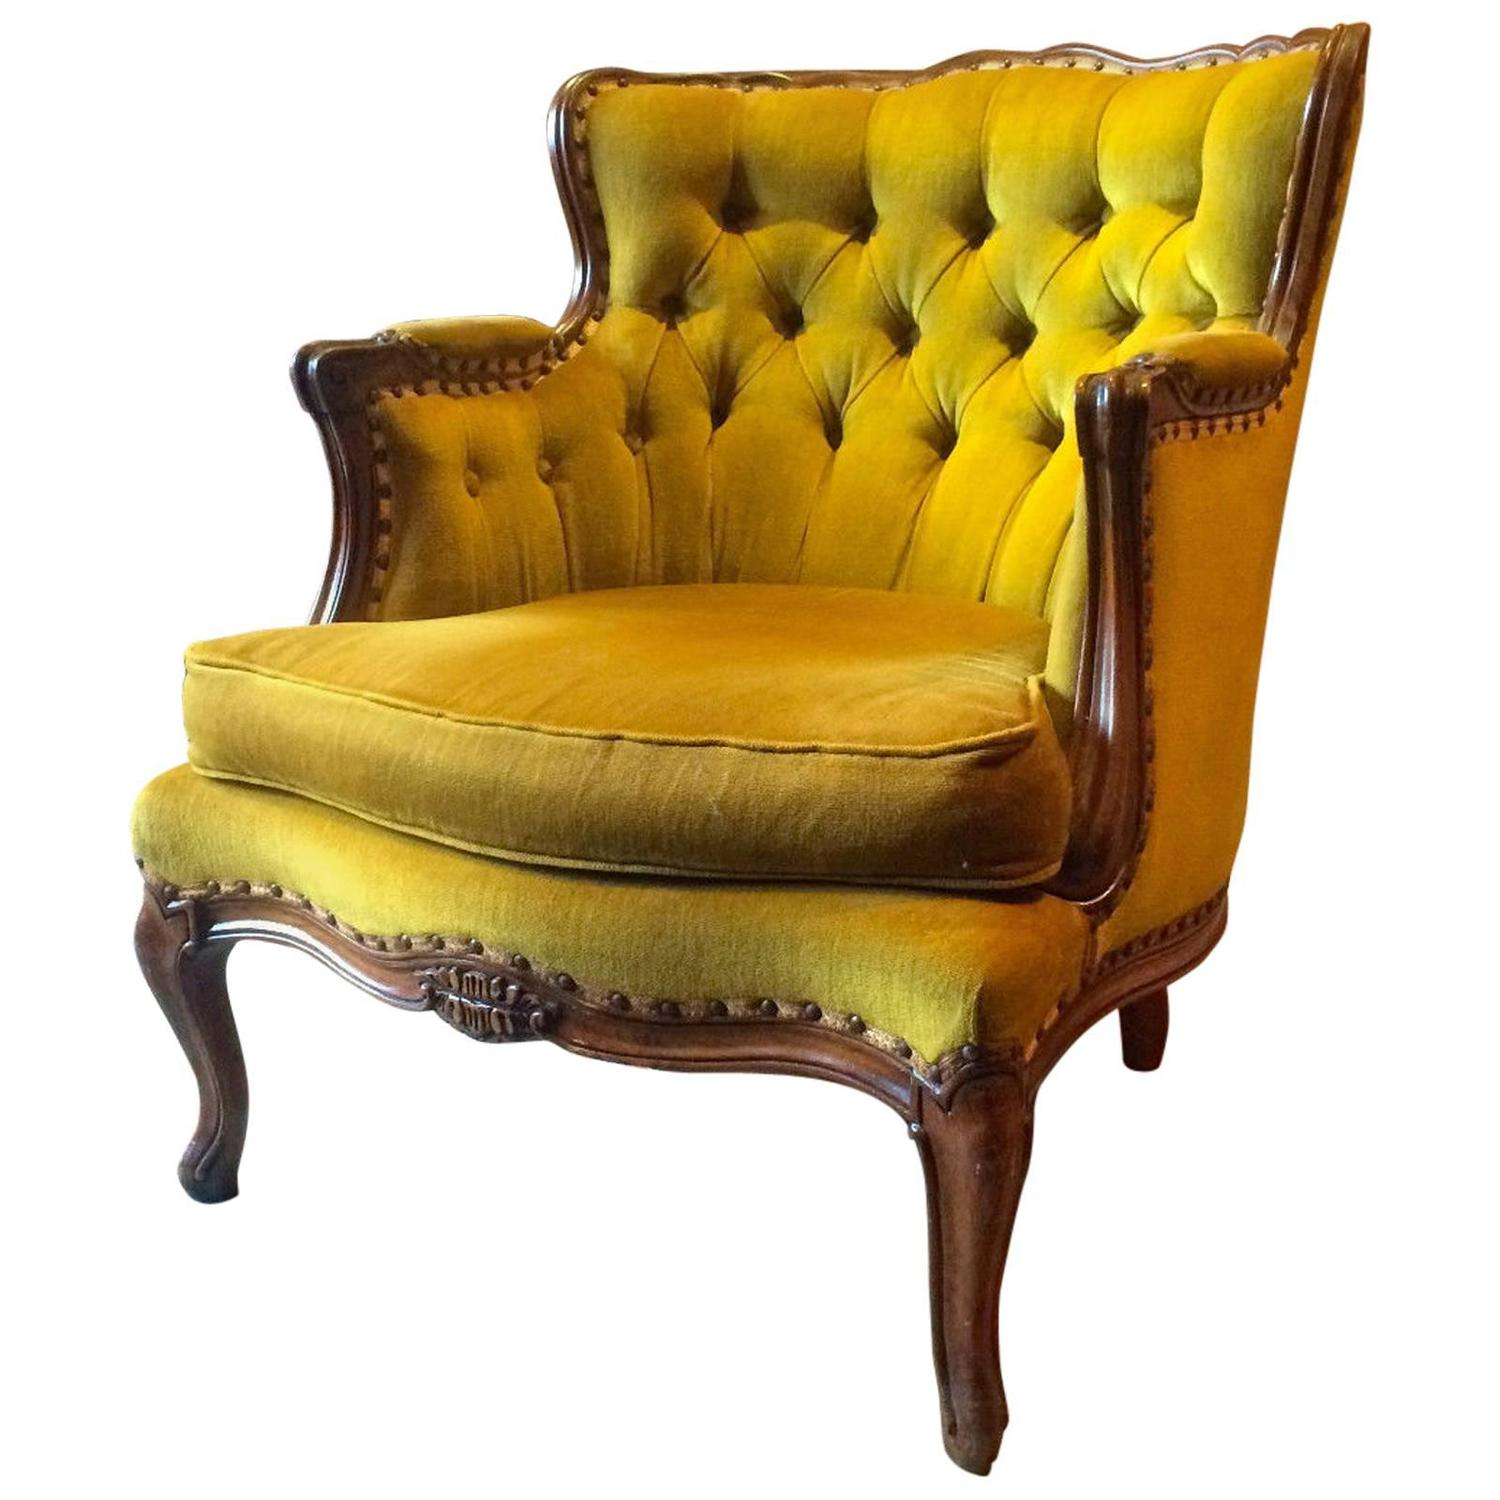 Vintage Armchair Styles: Antique Louis XV Style Armchair French Button-Back Gold